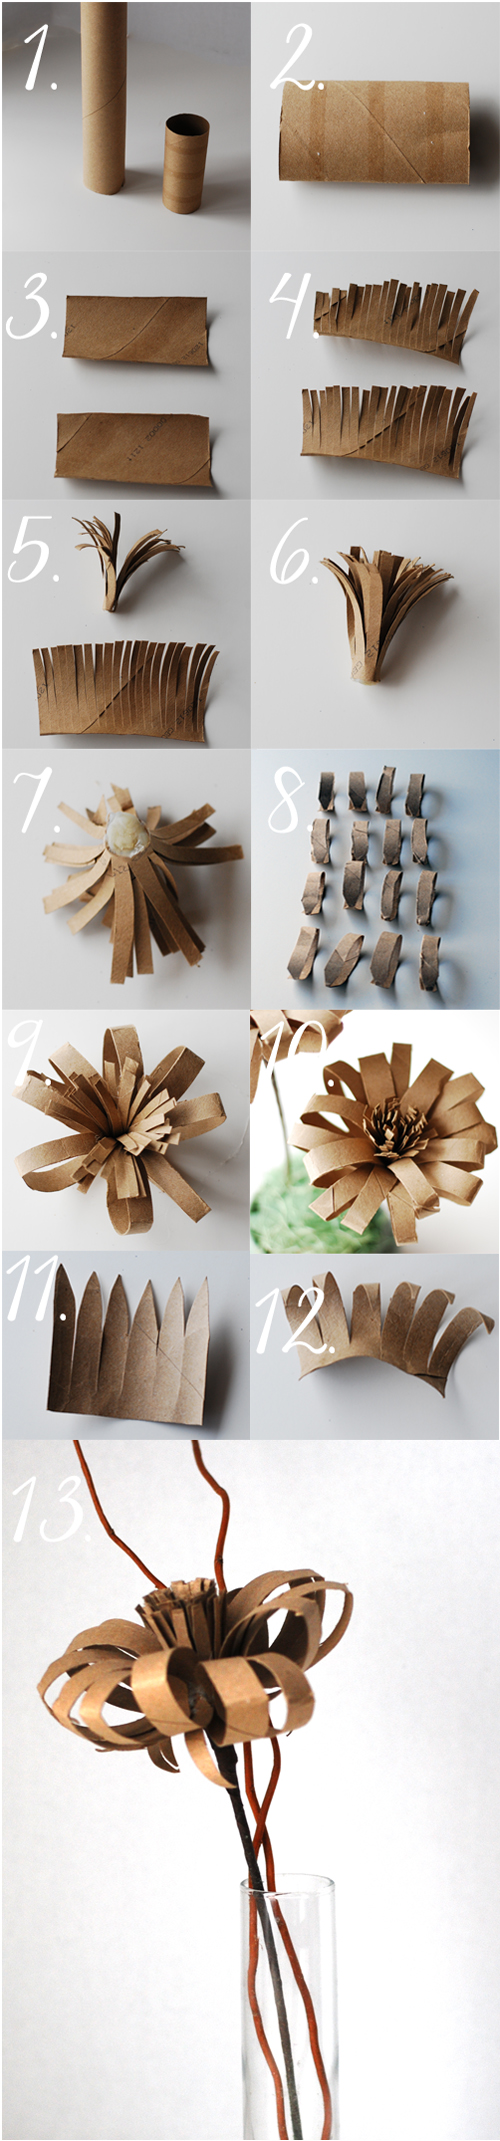 45 diy toilet paper roll crafts relaxing for you and engaging for easy toilet roll paper flower crafts jeuxipadfo Images